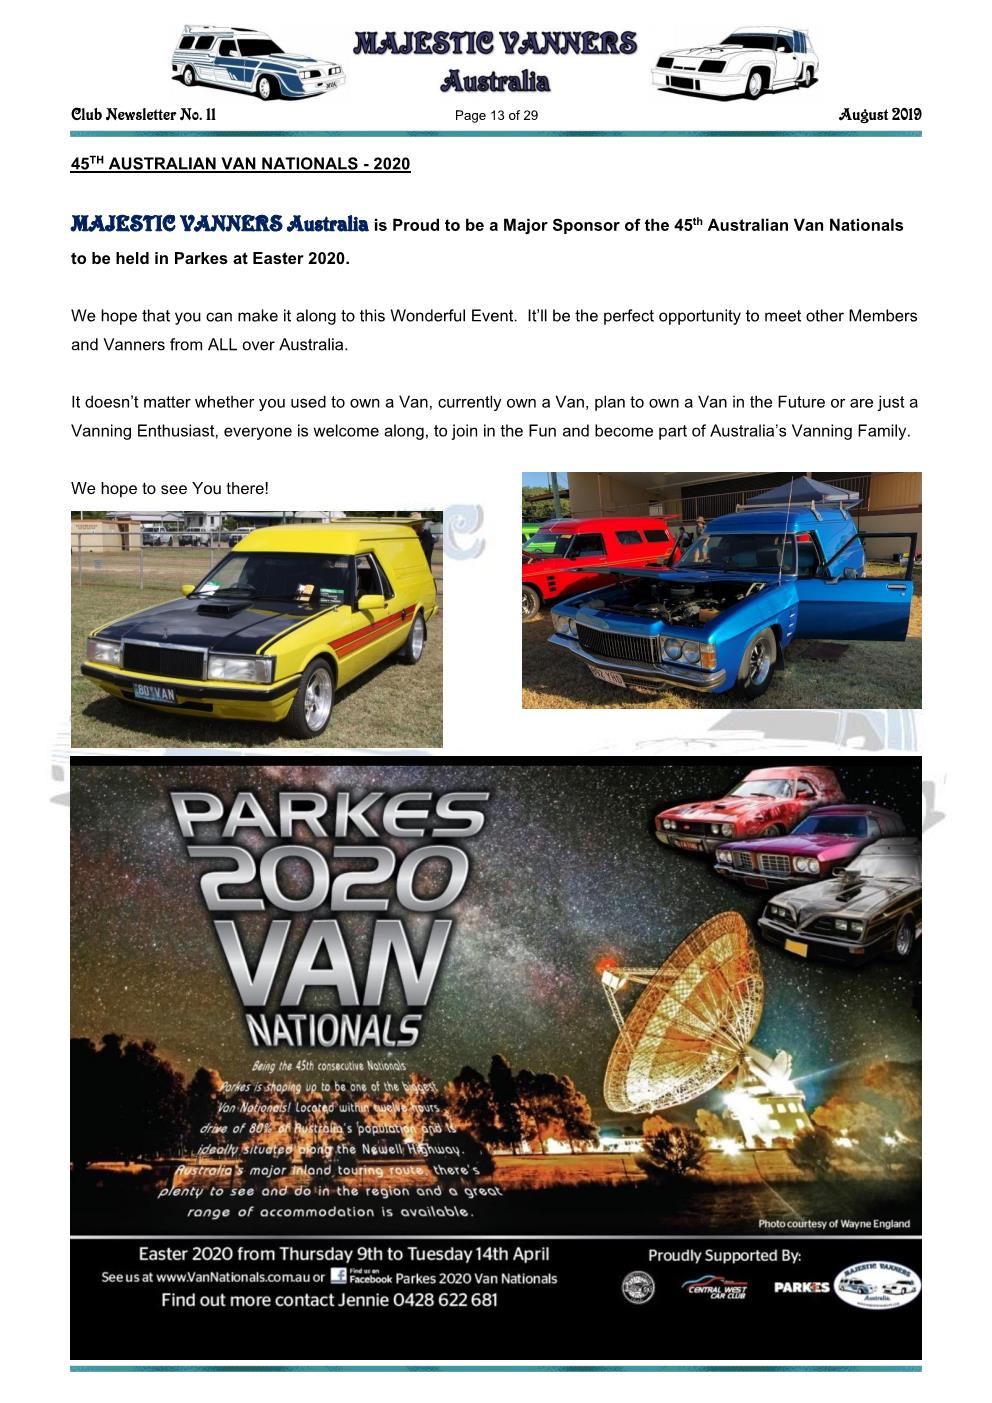 MAJESTIC VANNERS Newsletter Issue No: 11 August 2019 Mv_new52